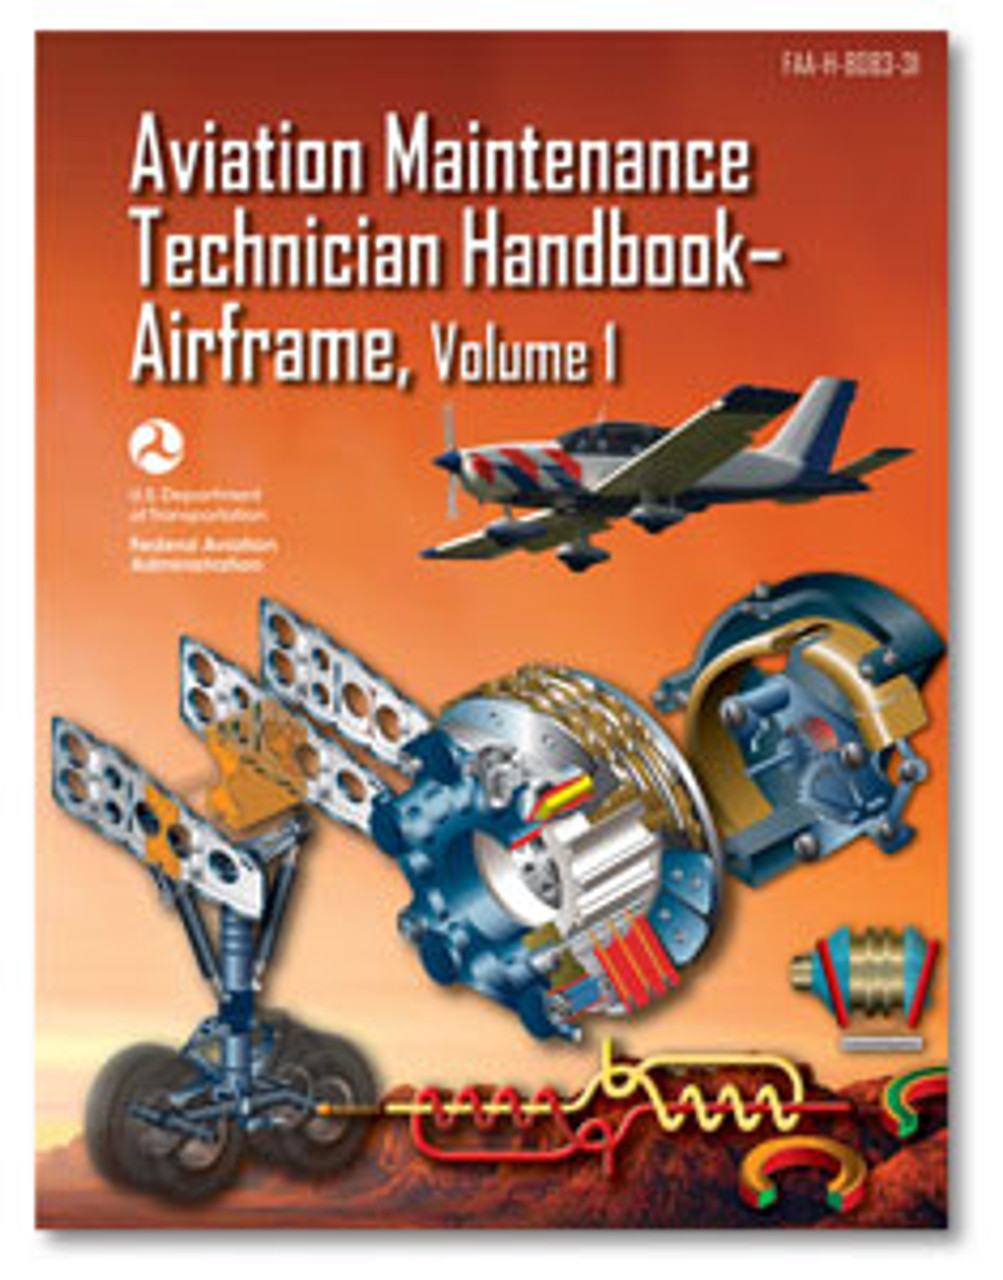 Asa Aviation Maintenance Technician Handbook Airframe Volume 1 A P Mechanic Handbook